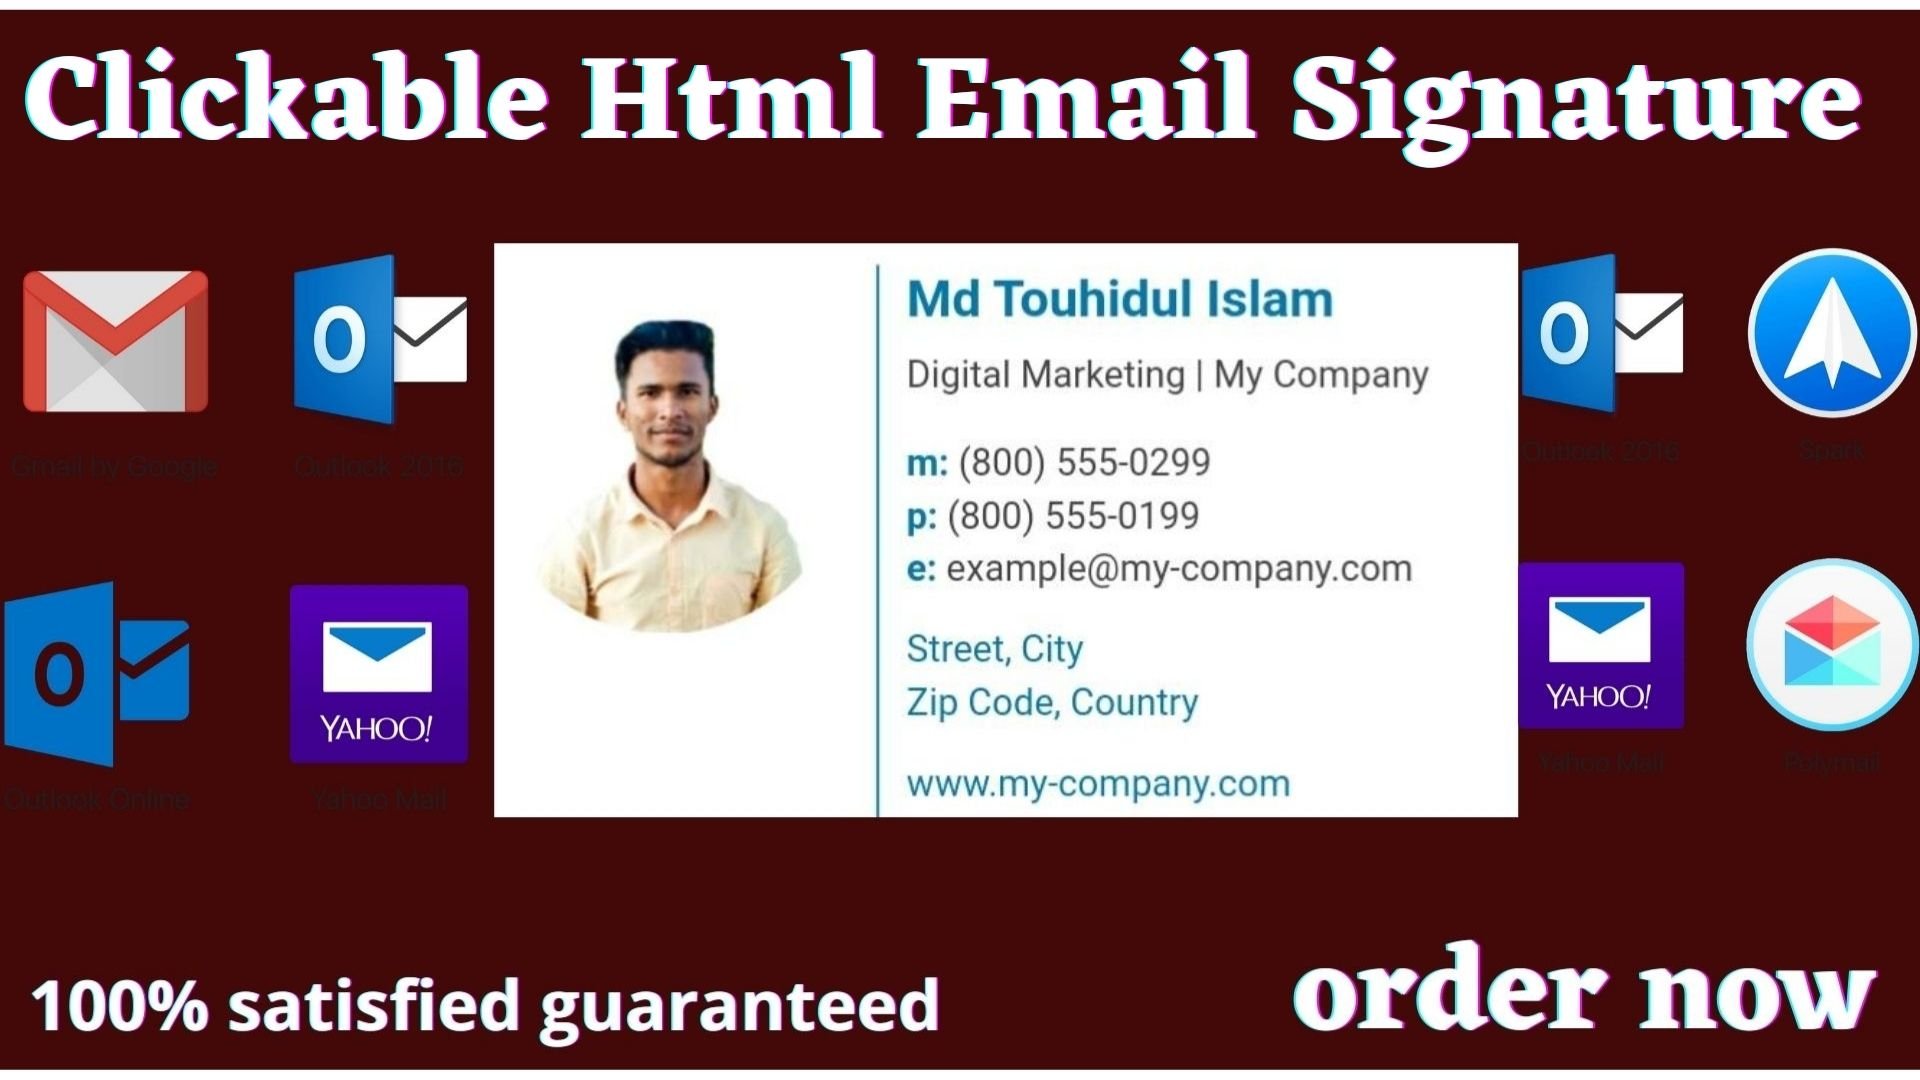 I Will Make Creative Clickable HTML Email Signature.